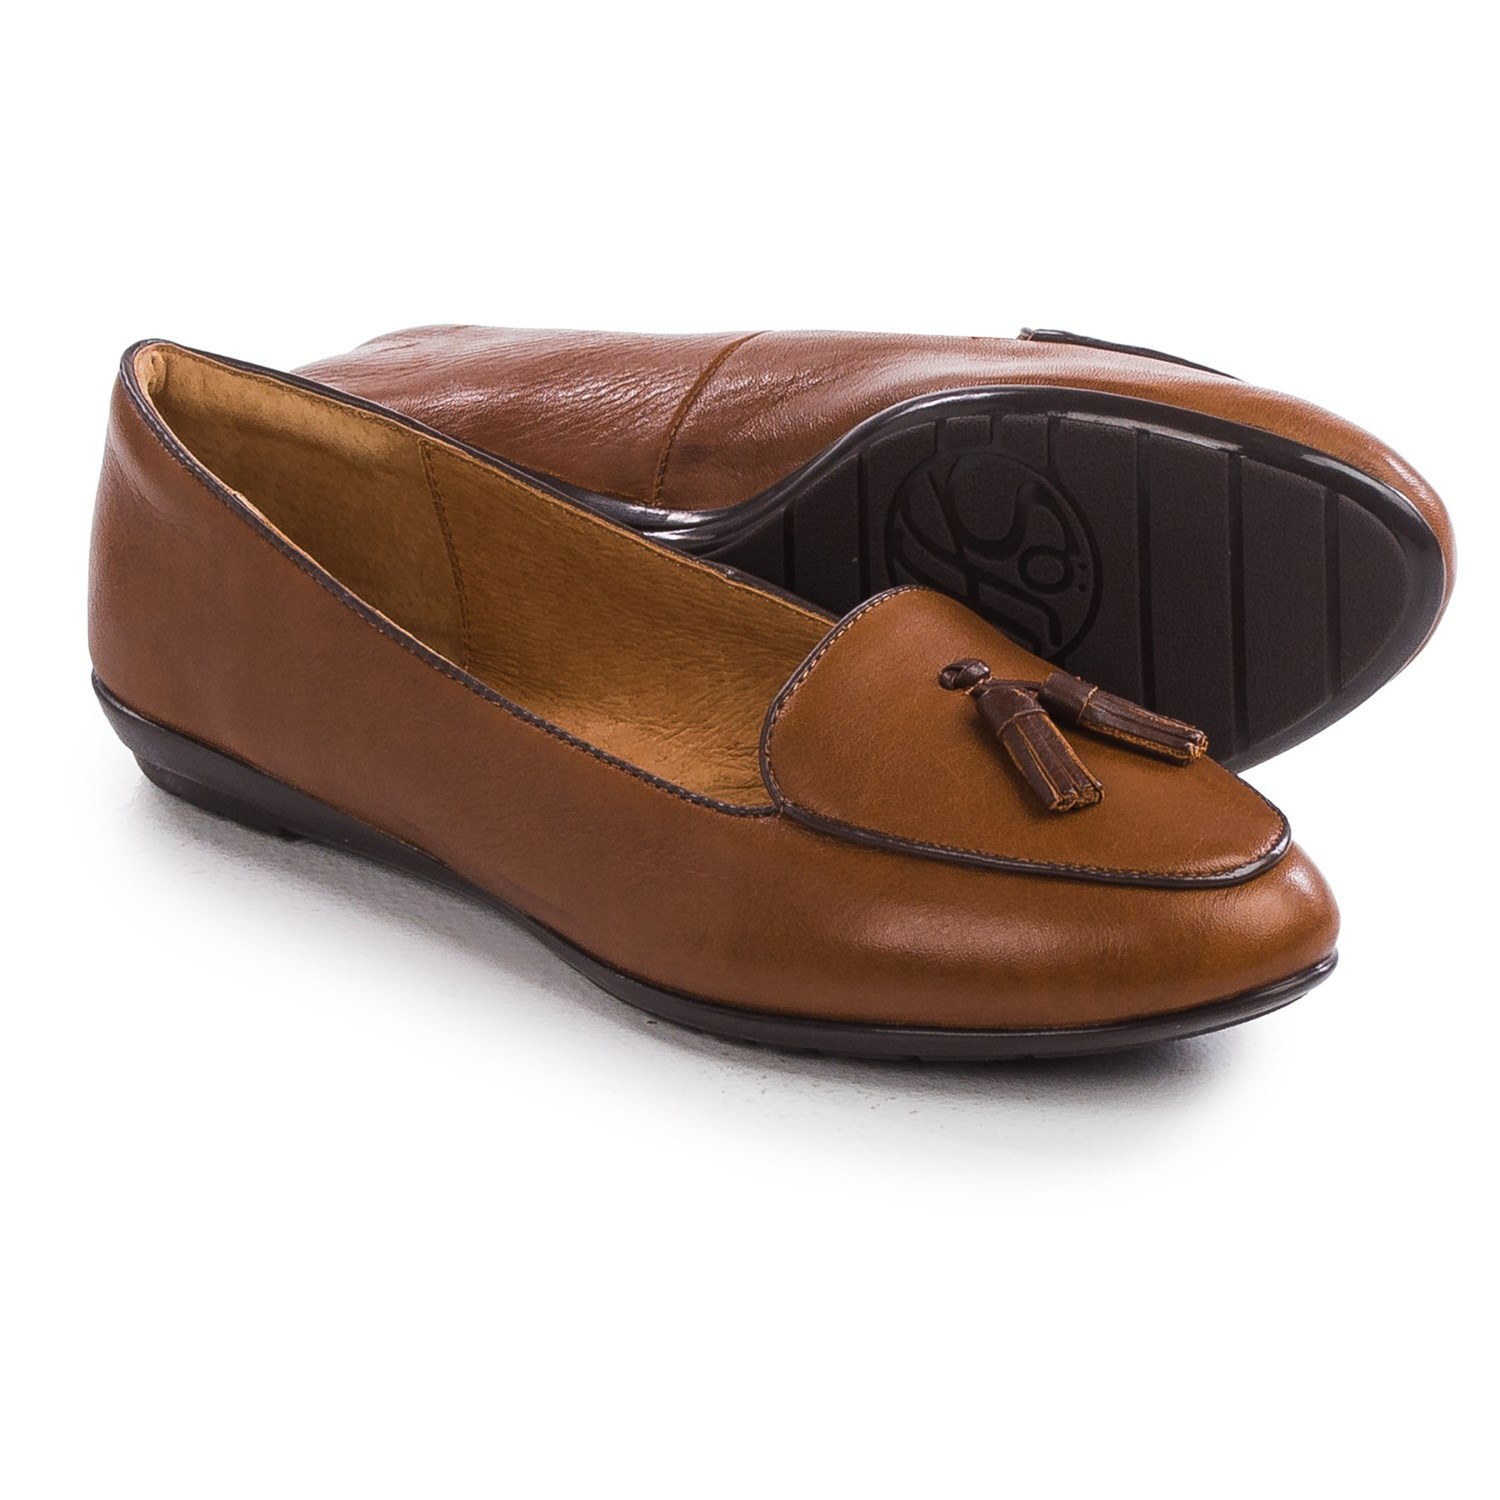 Searchable House Plans Sofft Shoes 28 Images Sofft Women S Cadee Clogs Mules